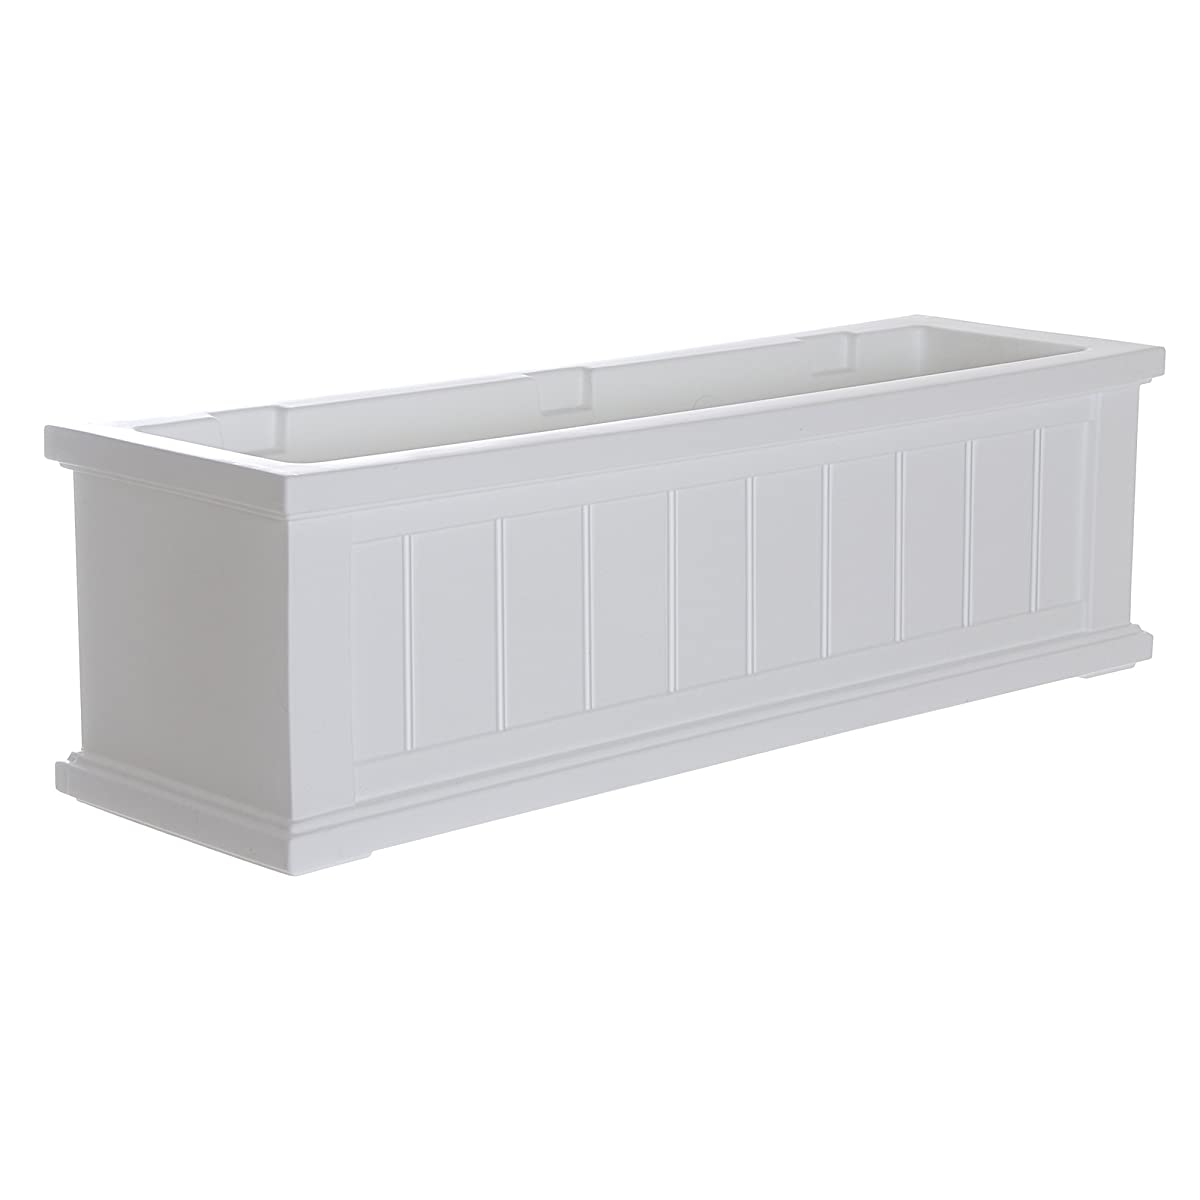 Mayne 4840-W Cape Cod Polyethylene Window Box, 3 , White